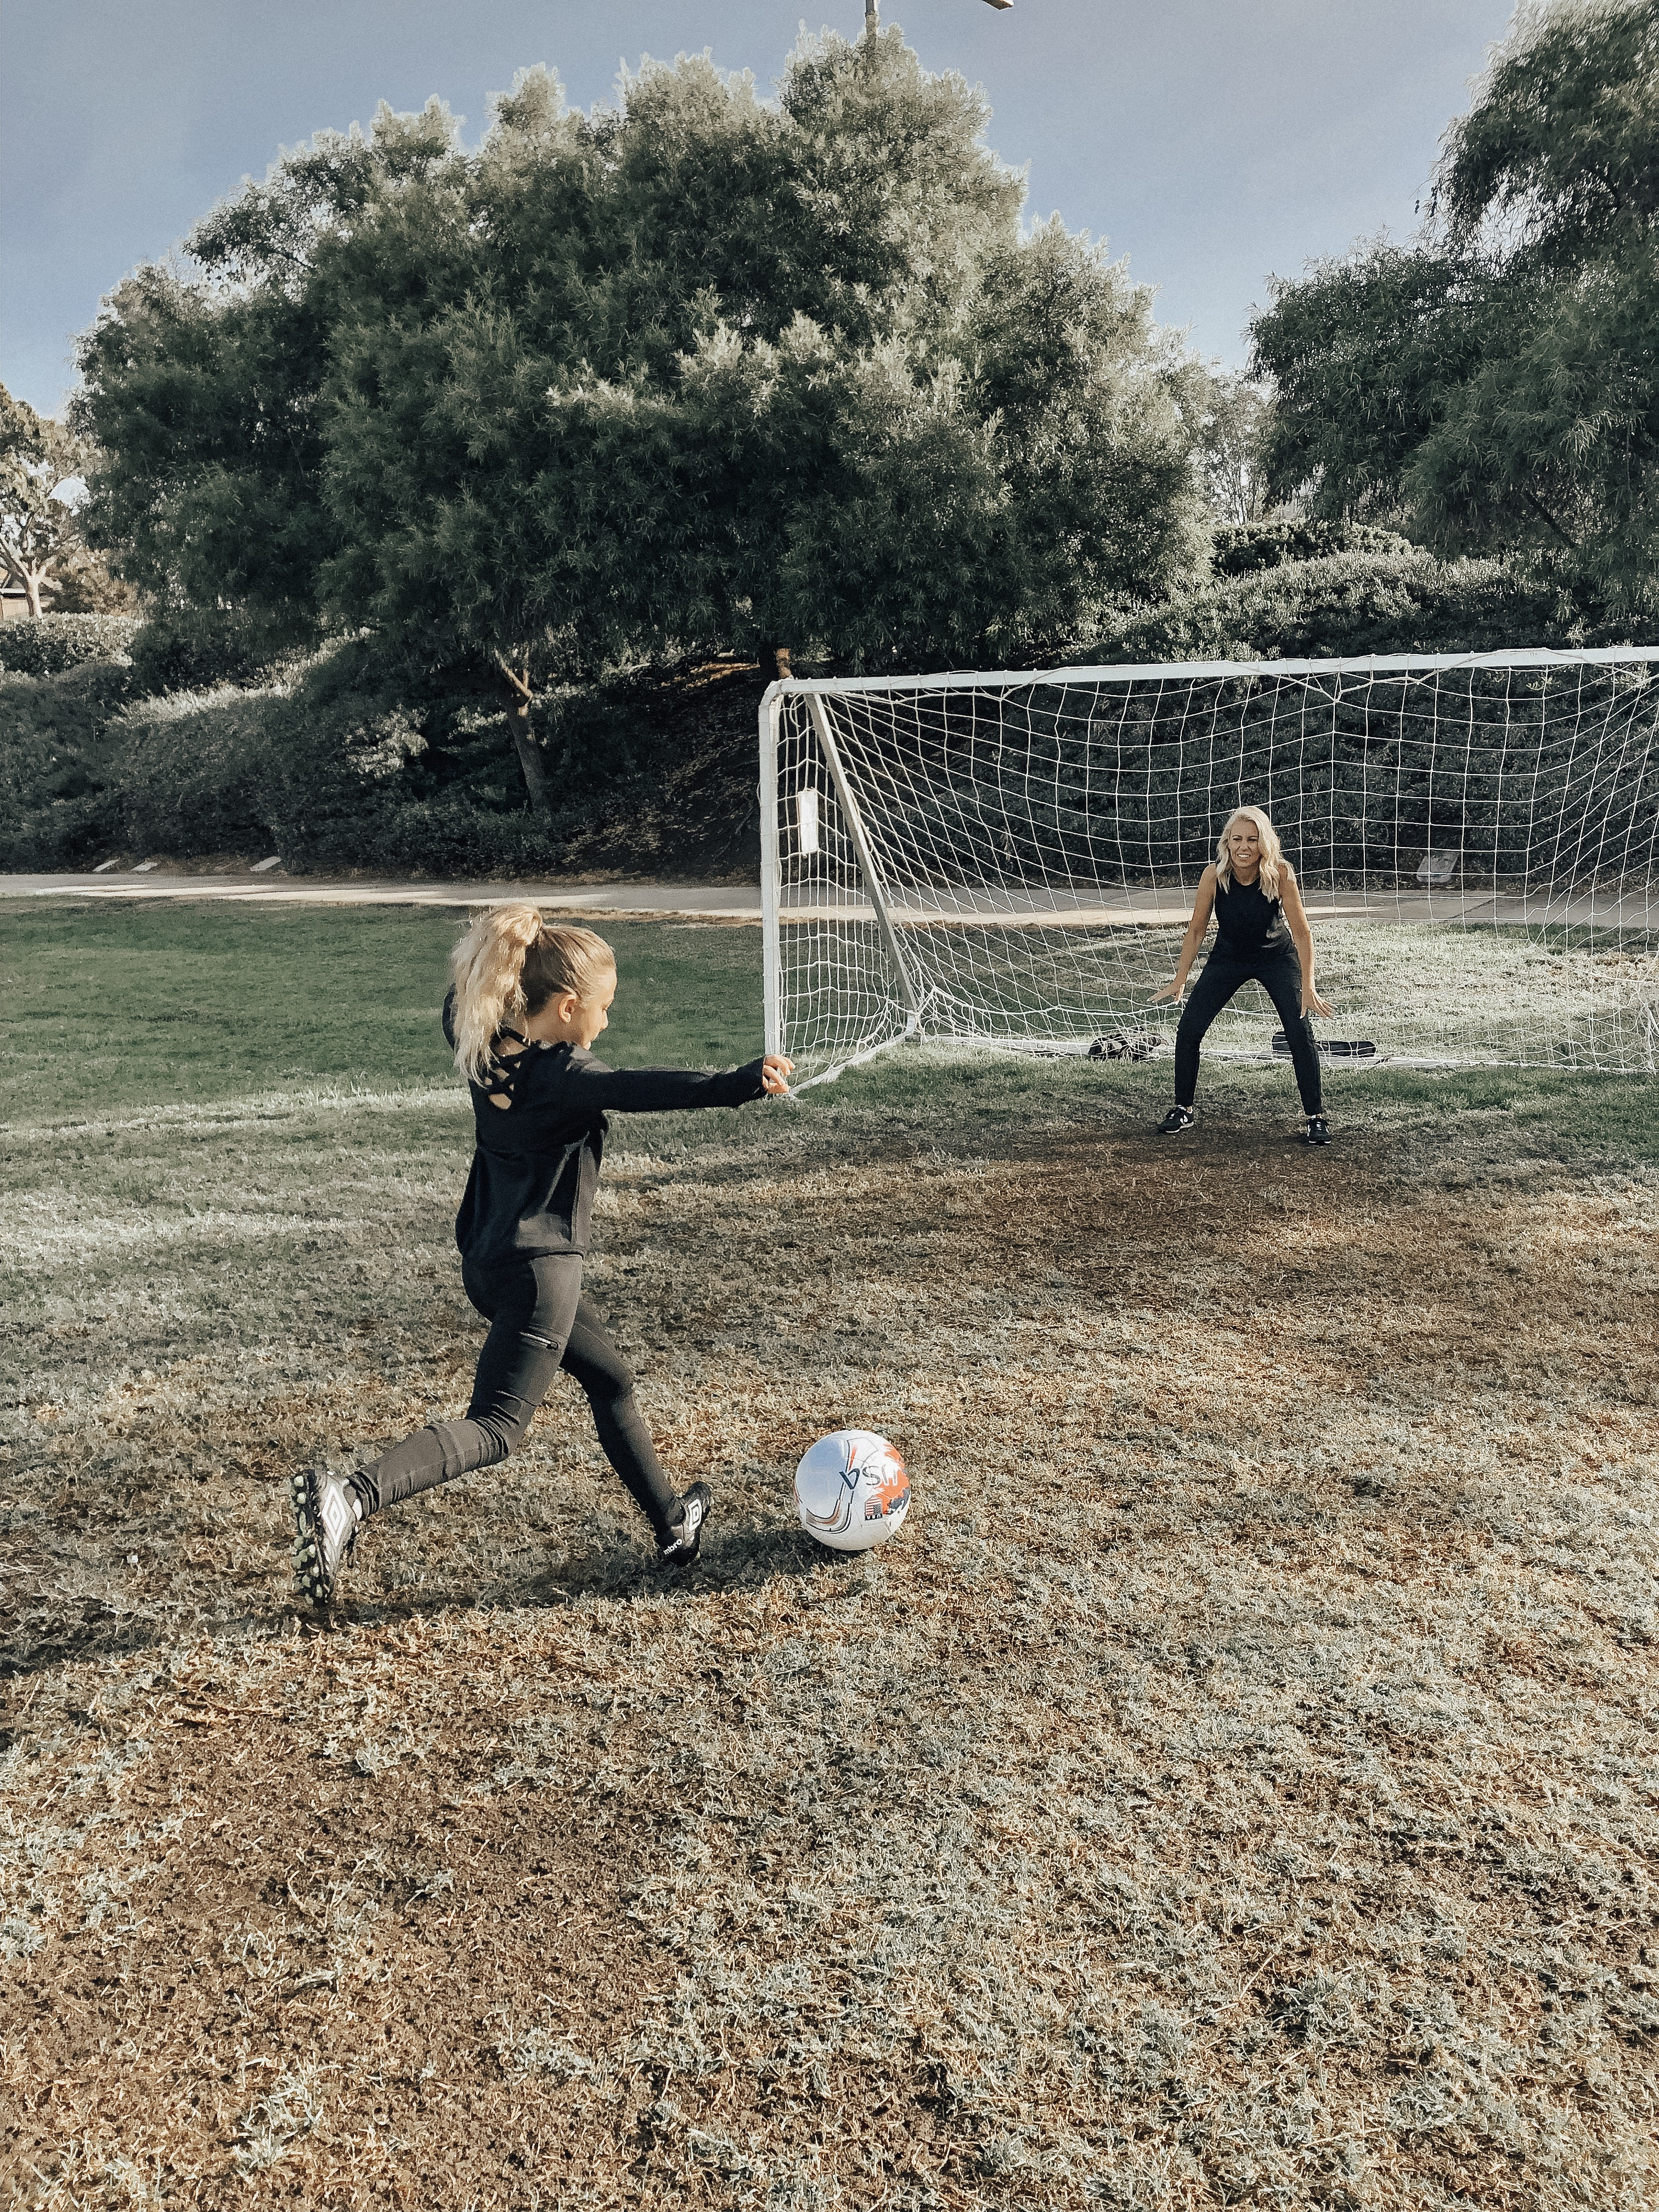 STAYING ACTIVE WITH ATHLETA- Jaclyn De Leon Style + Mommy and me matching looks + active wear + soccer + sports + momlife + stretching + black chic athletic wear